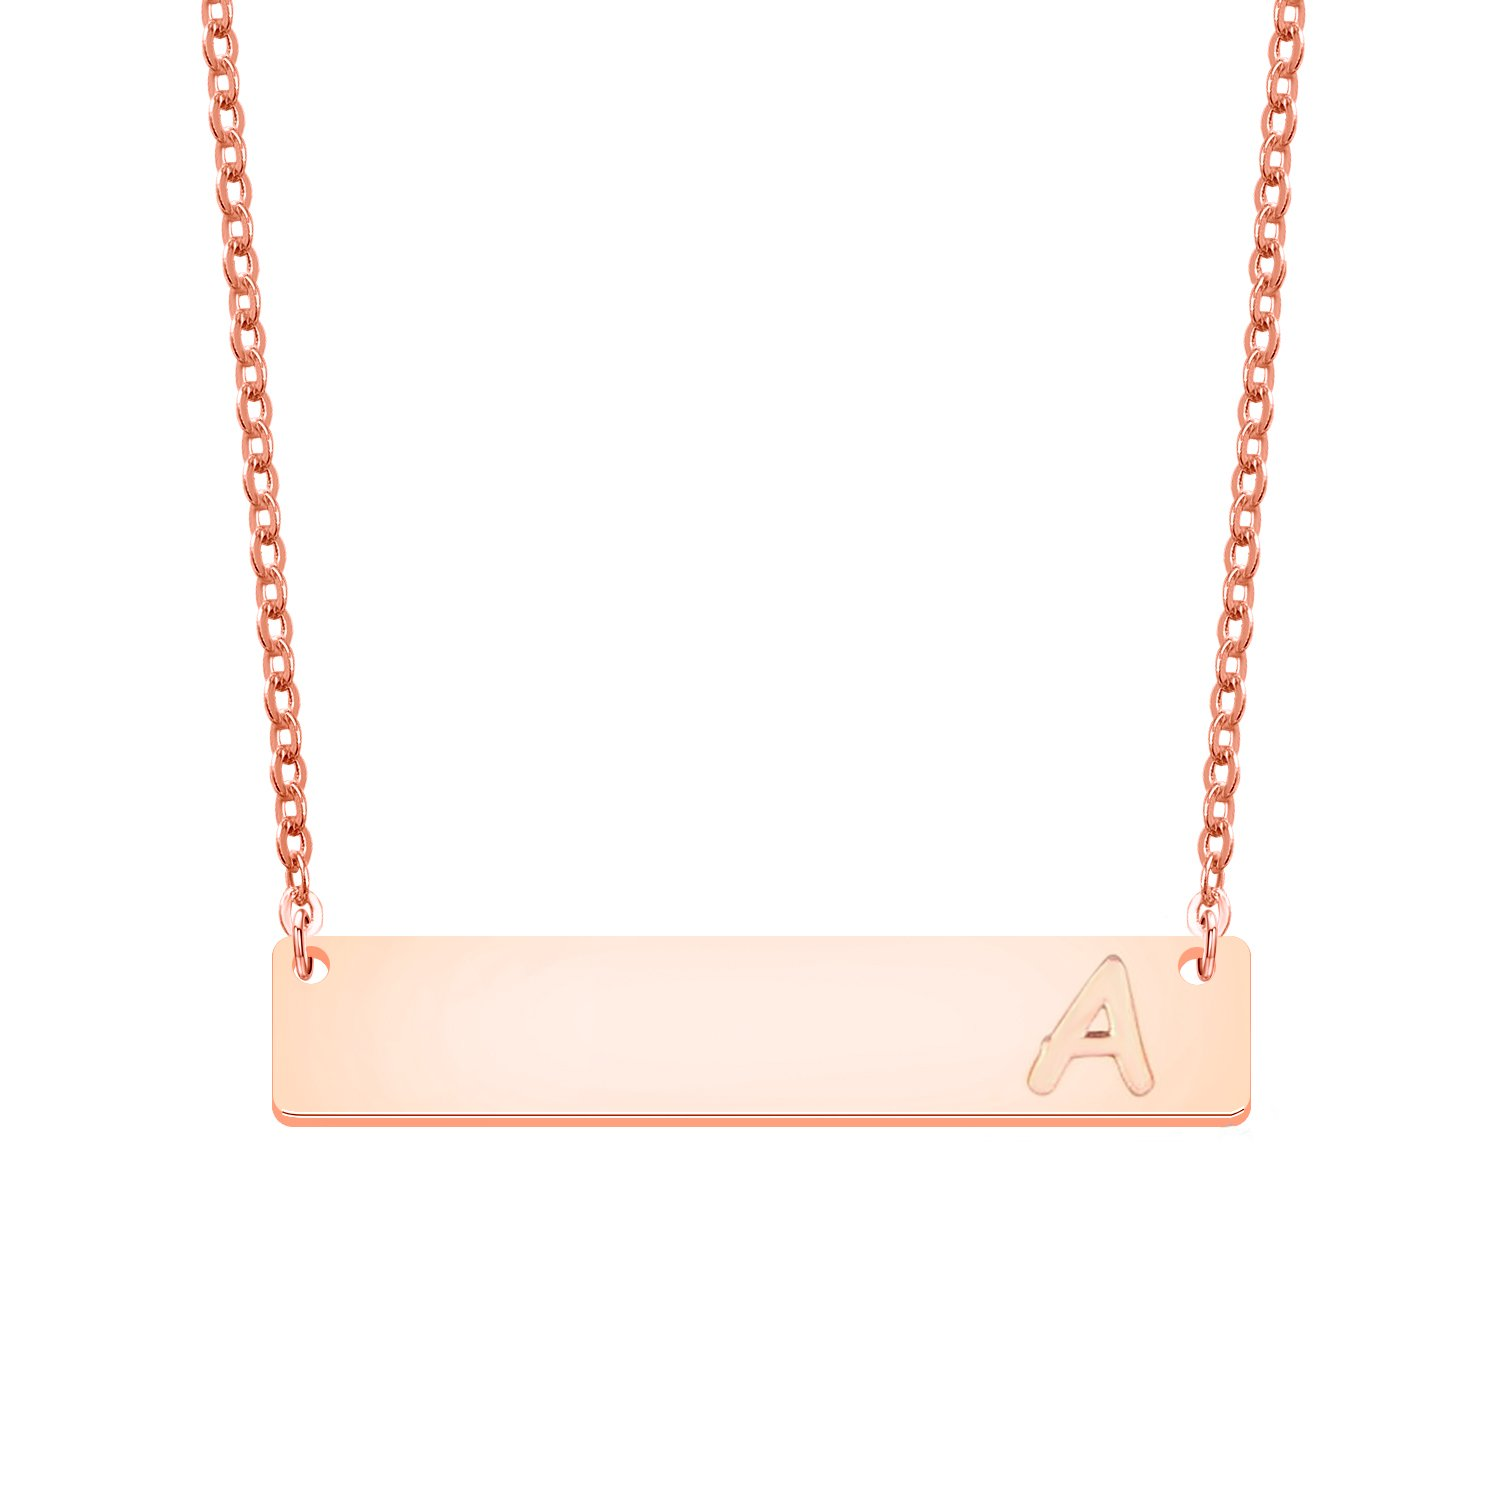 MAOFAED Initial Necklace ,Rose Gold Bar Necklace Letter Necklace Wedding Gift (A)